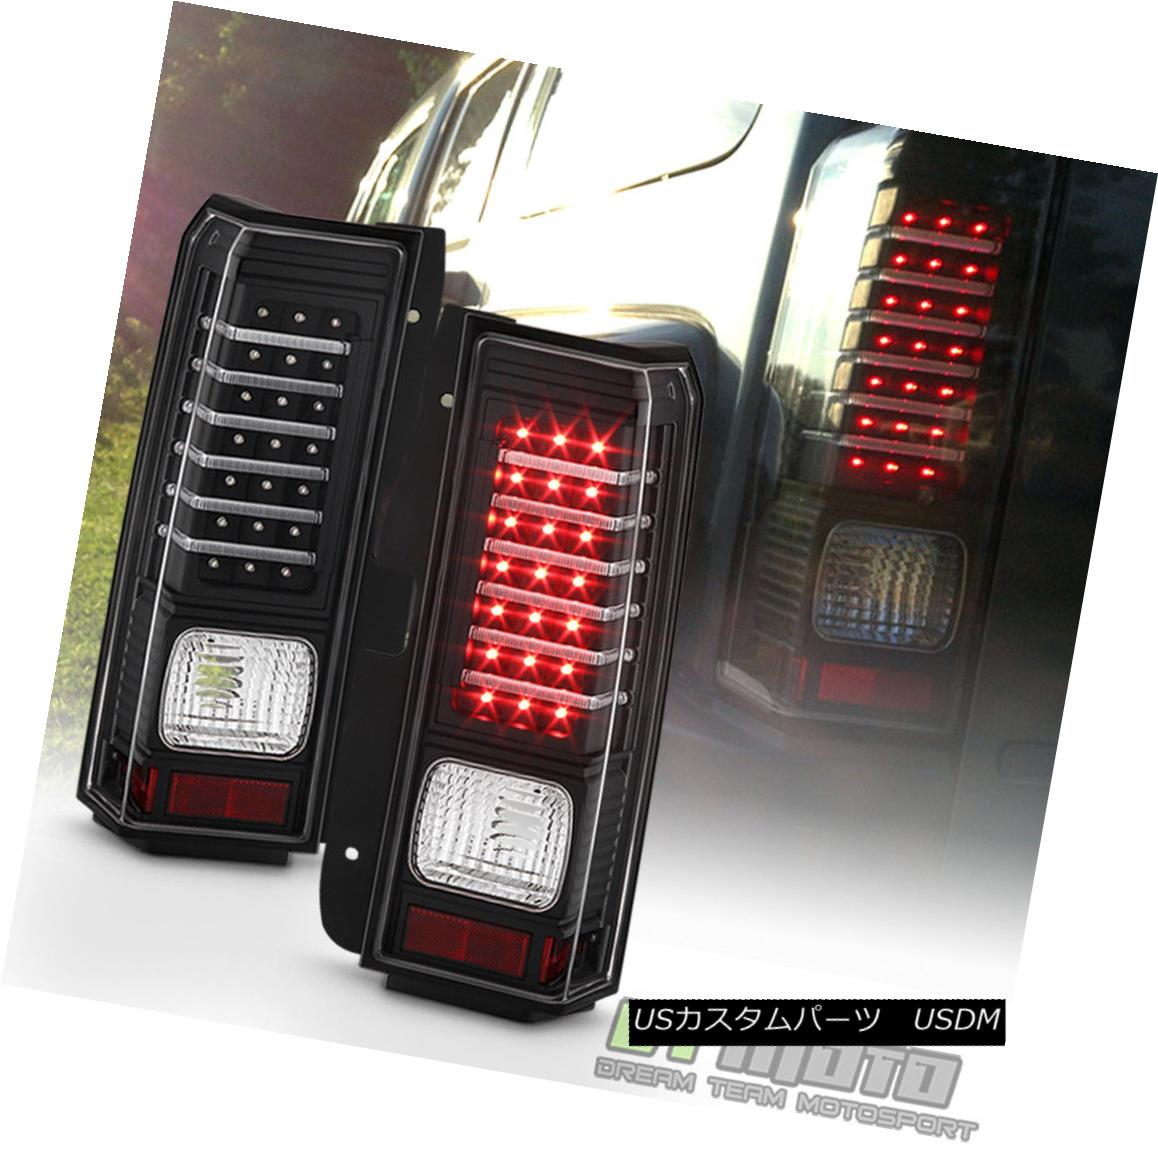 テールライト 2006 2007 2008 2009 2010 Hummer H3 LED [Light Bar] Tail Lights Lamps Left+Right 2006 2007 2008 2009 2010 Hummer H3 LED [ライトバー]テールライトランプ左右+